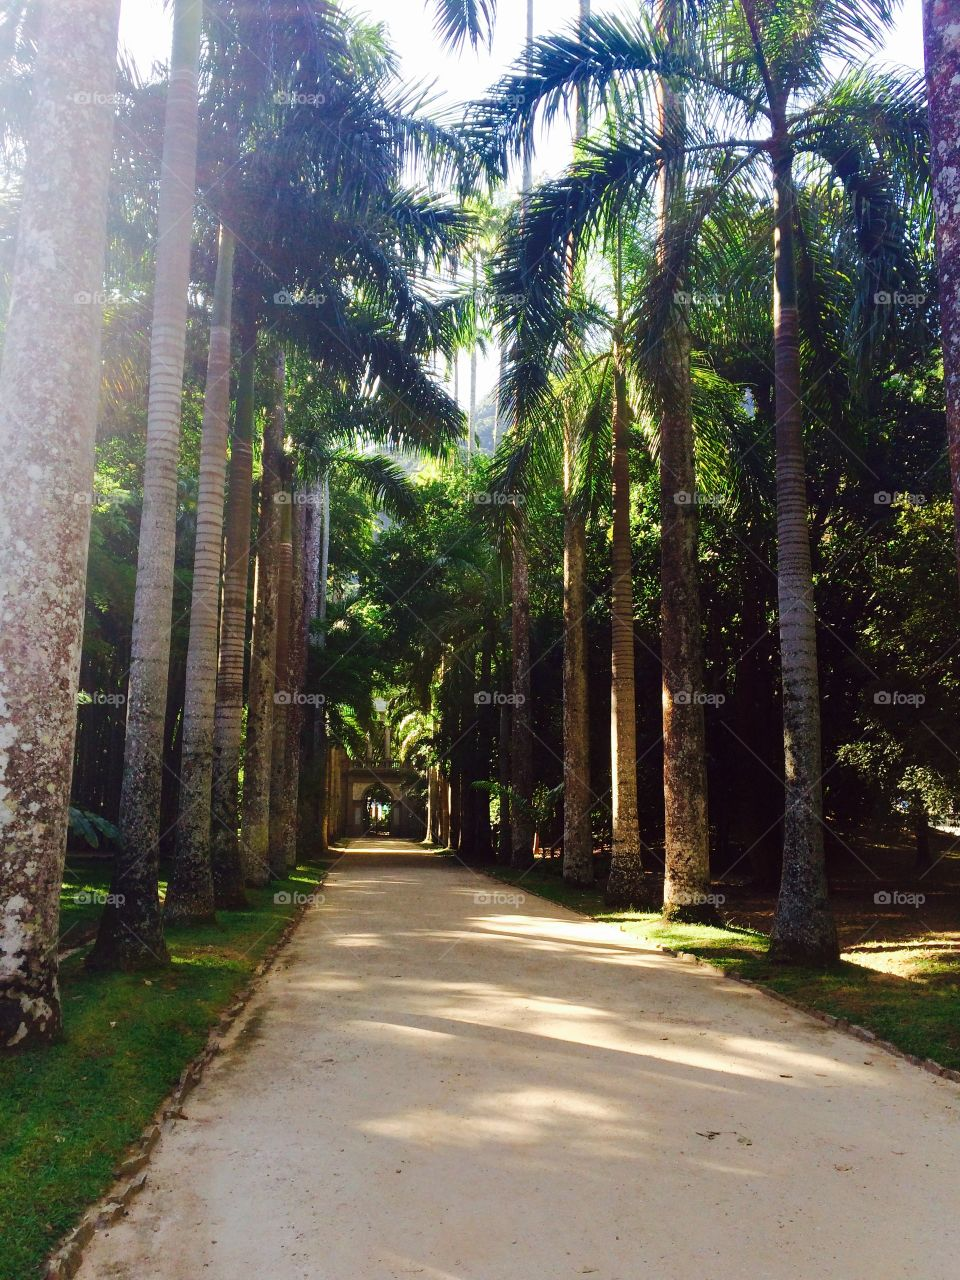 Footpath amidst palm tree in park